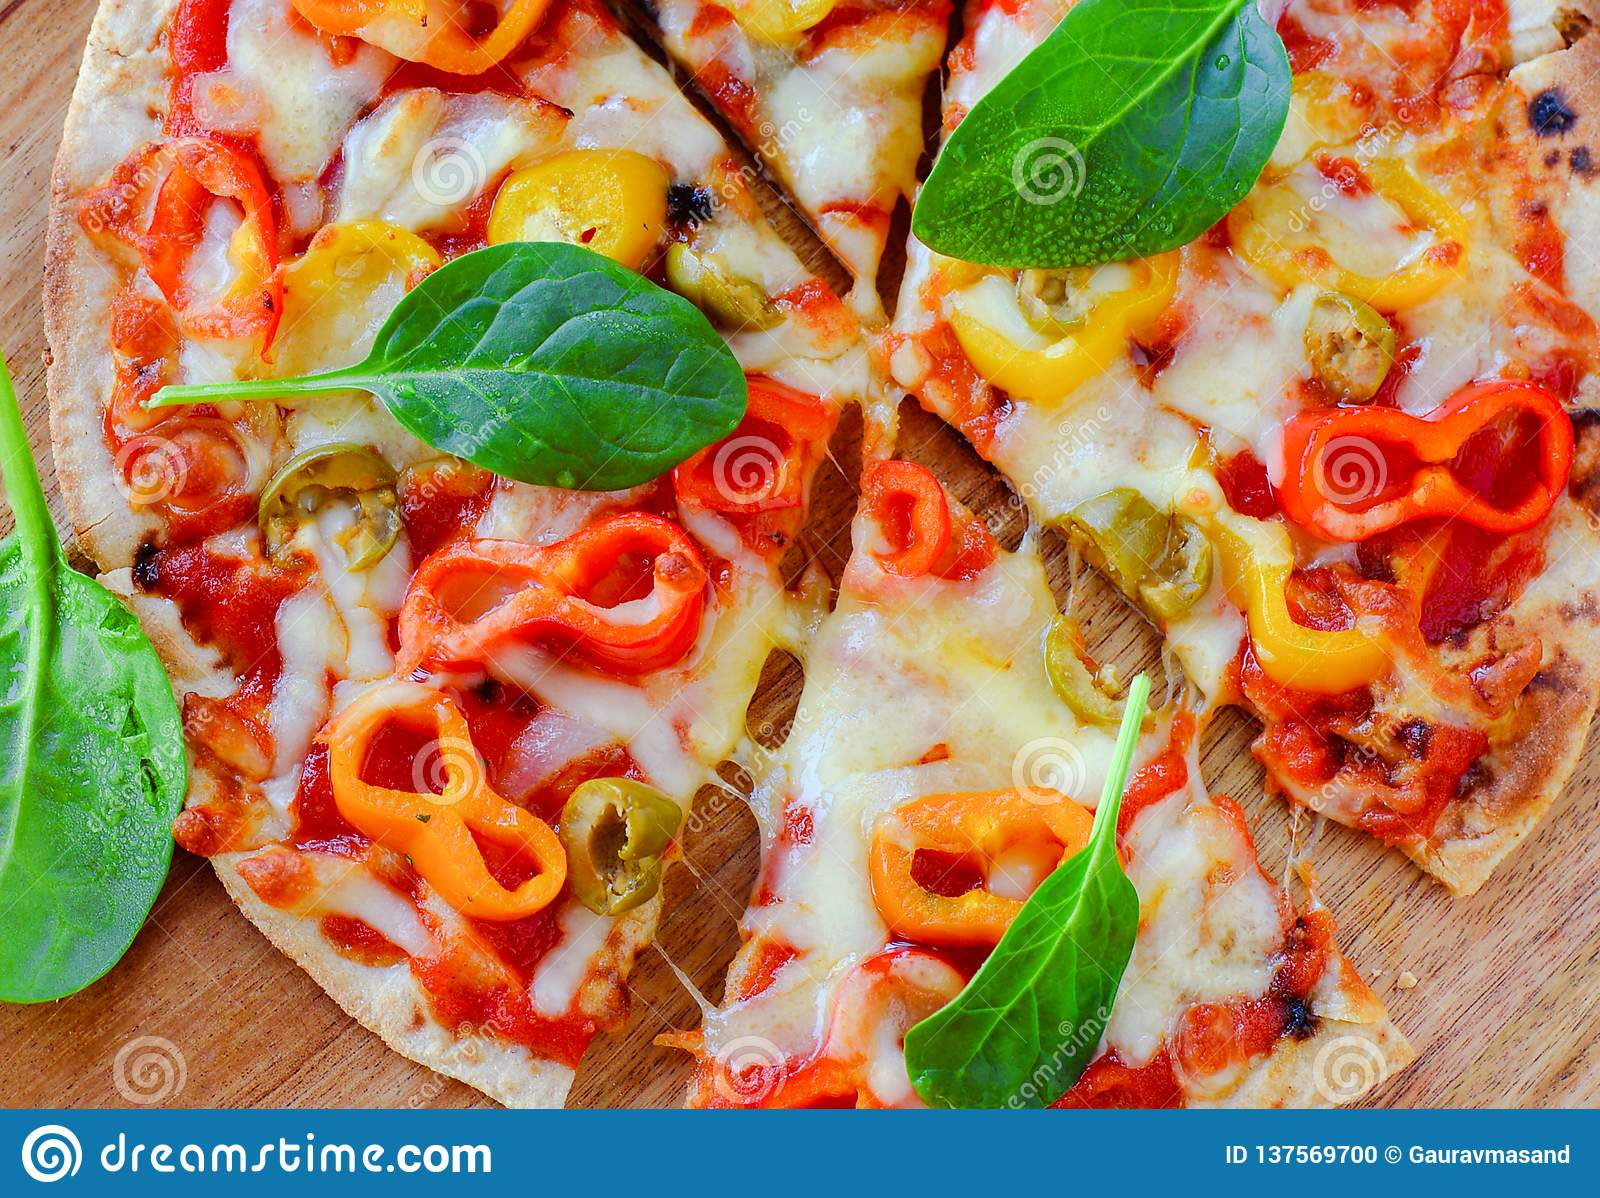 Italian Diner Slices Of Italian Vegetarian Pizza Stock Photo Image Of Fast